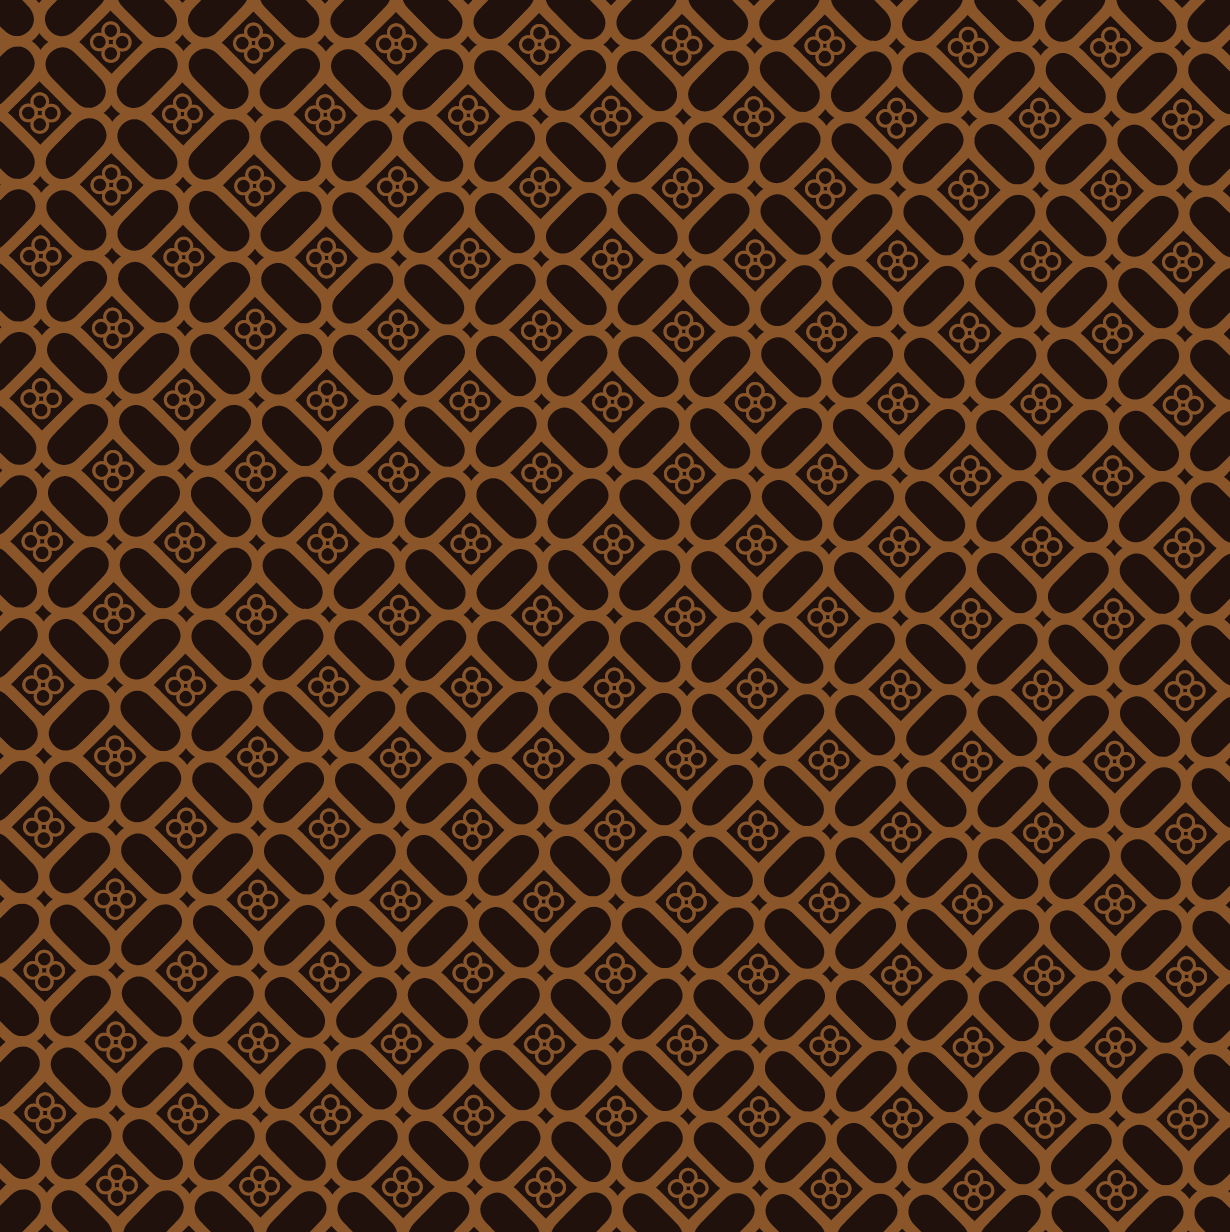 louis vuitton pattern type design by inf3ct3d d3m0n on. Black Bedroom Furniture Sets. Home Design Ideas